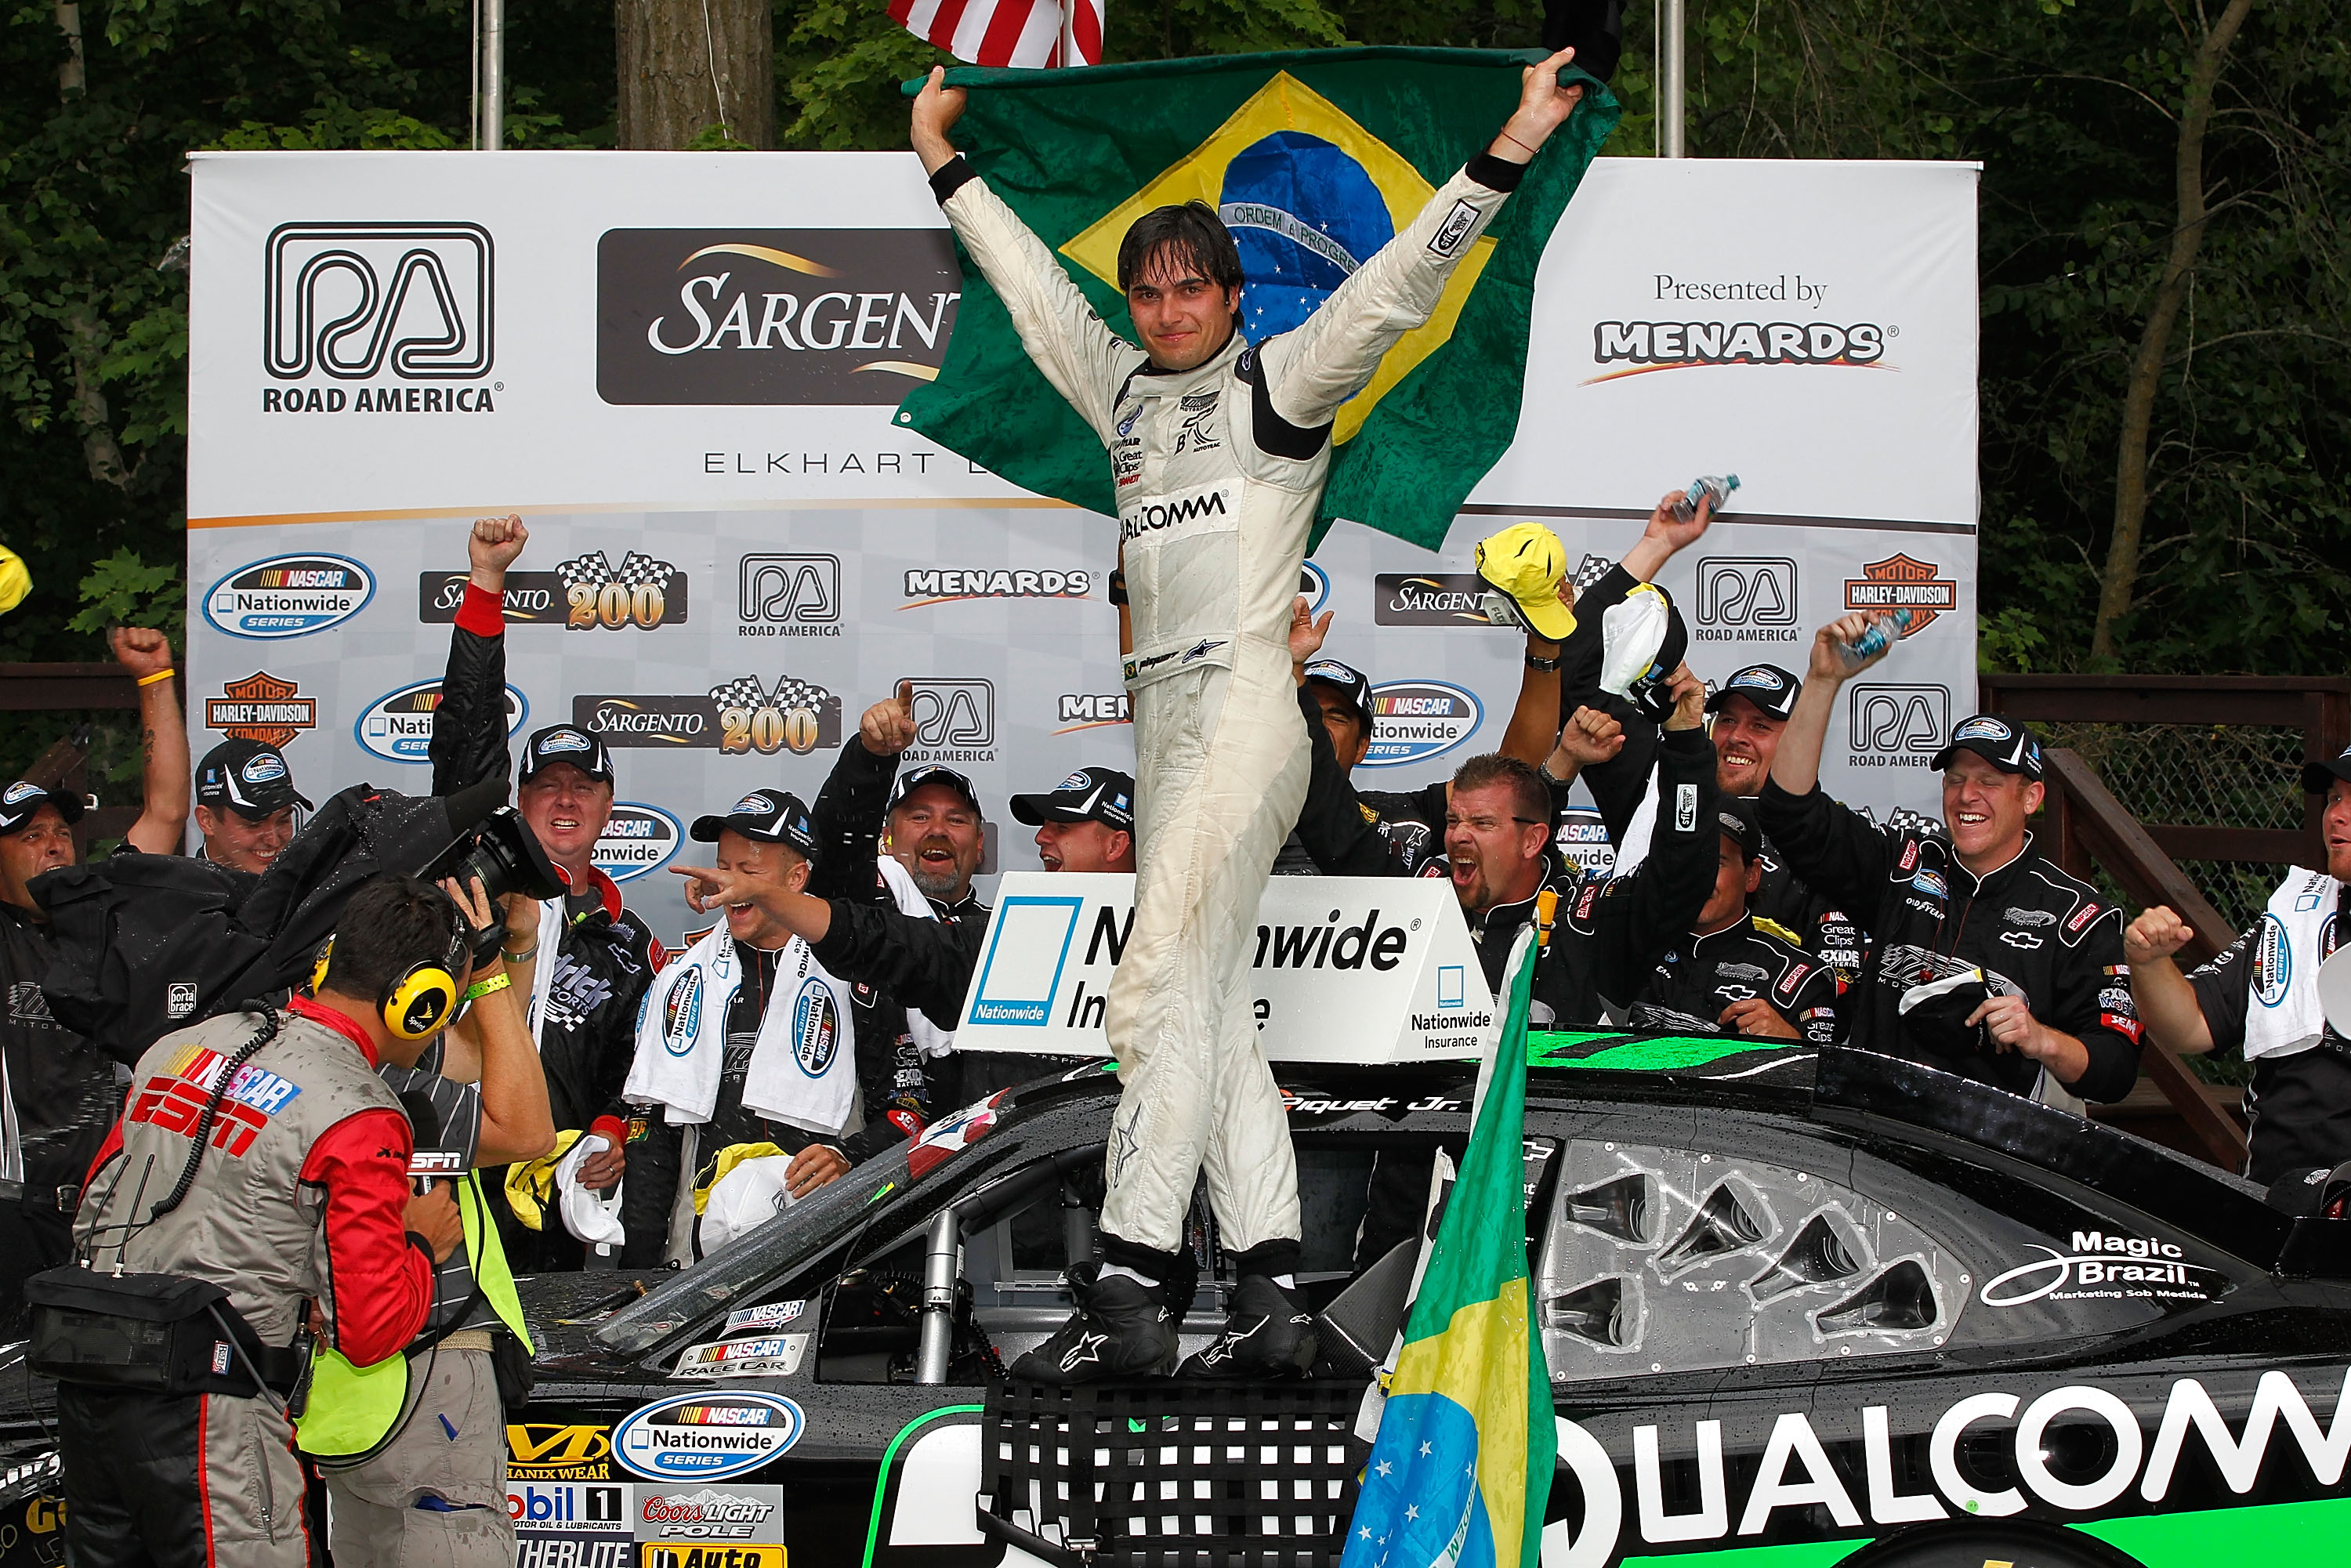 2012_ra_june_nns_race_062312_piquet_victory_lane.jpg